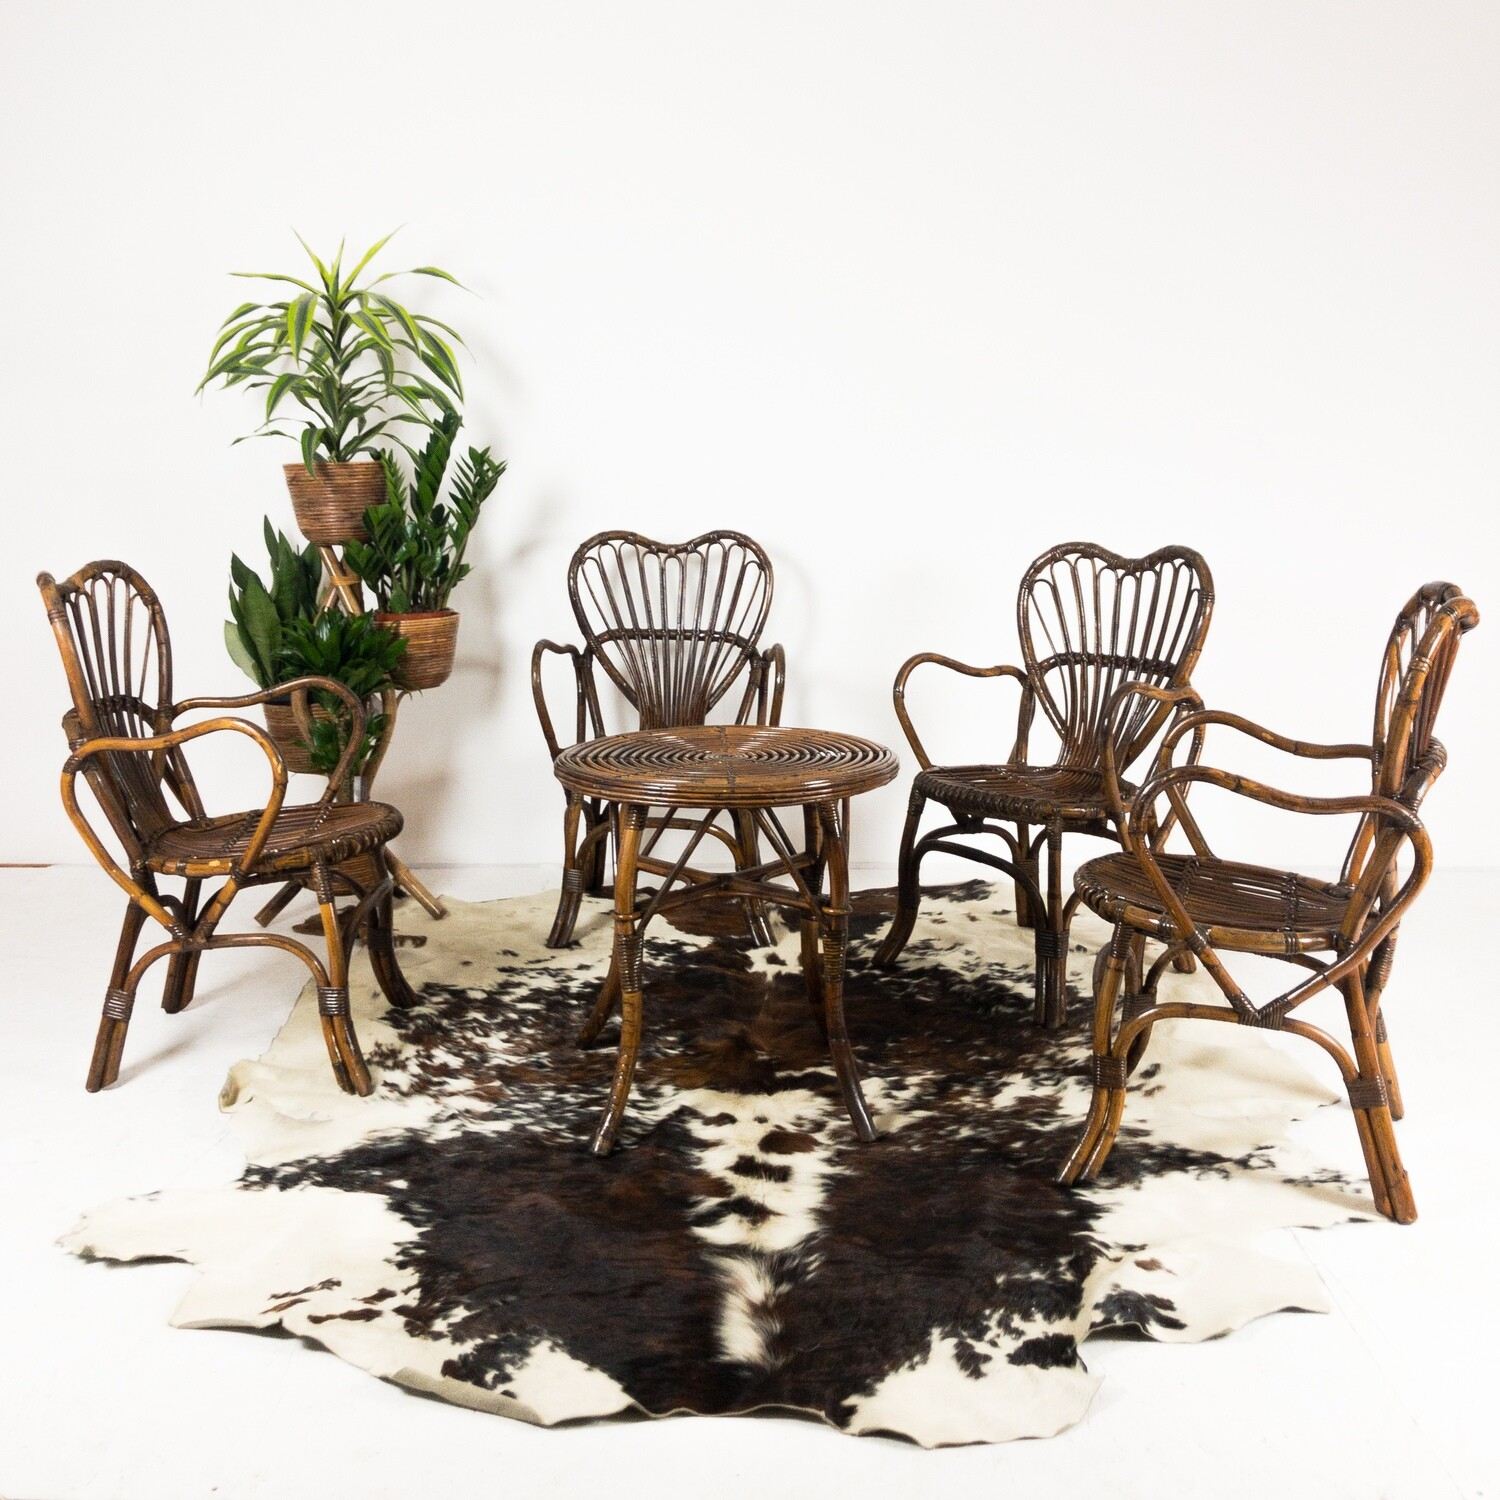 Set of 4 bamboo chairs and coffee table, Italy 1970s